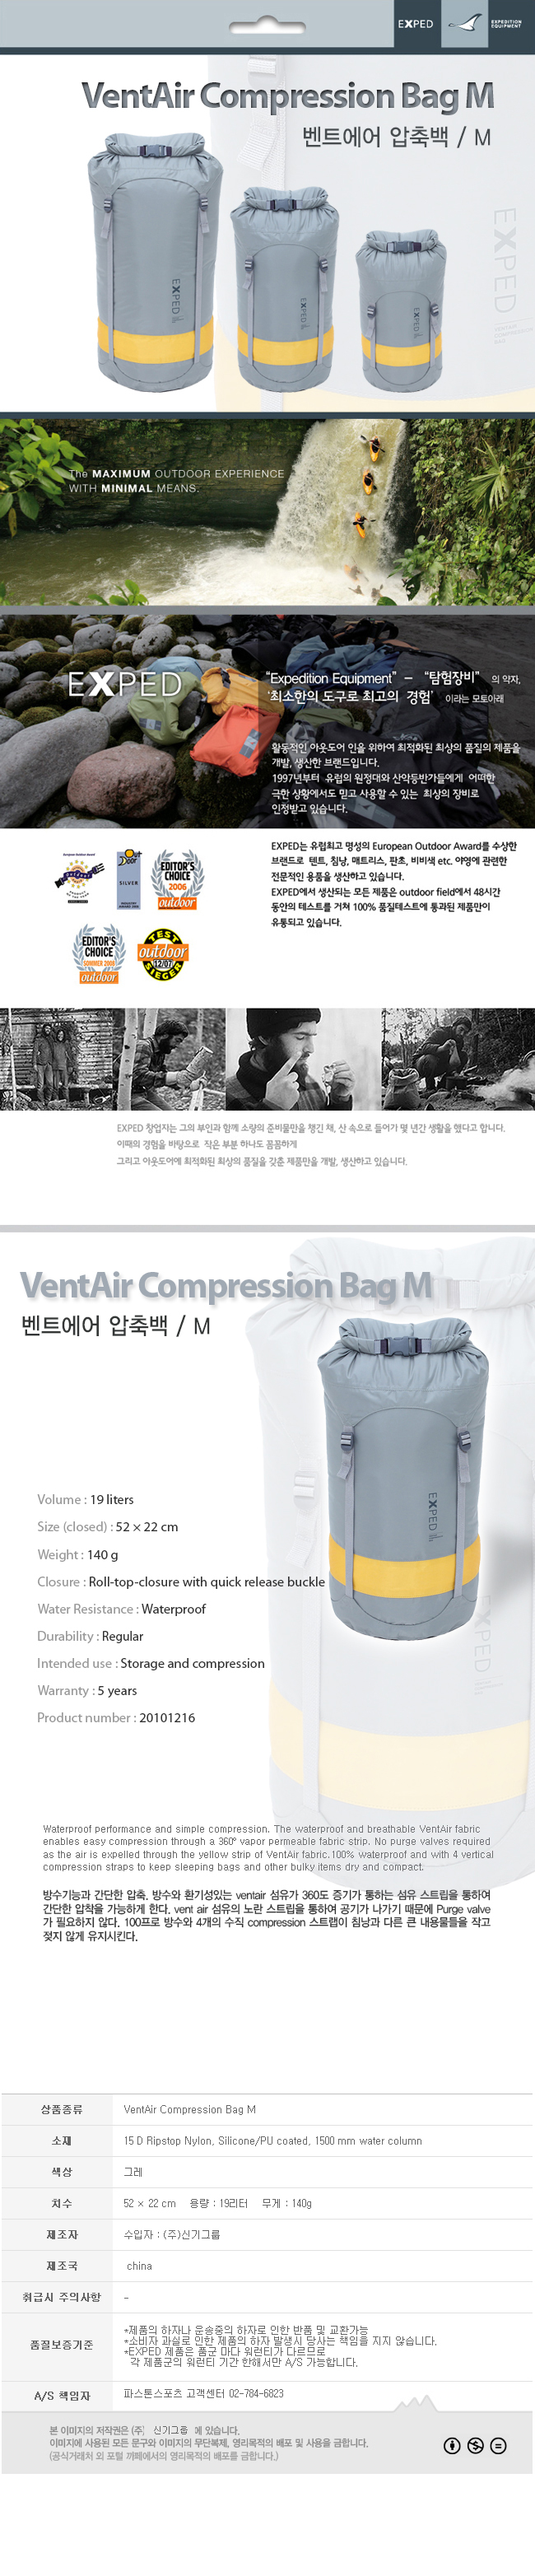 13-VentairCompressionBag_M1.jpg